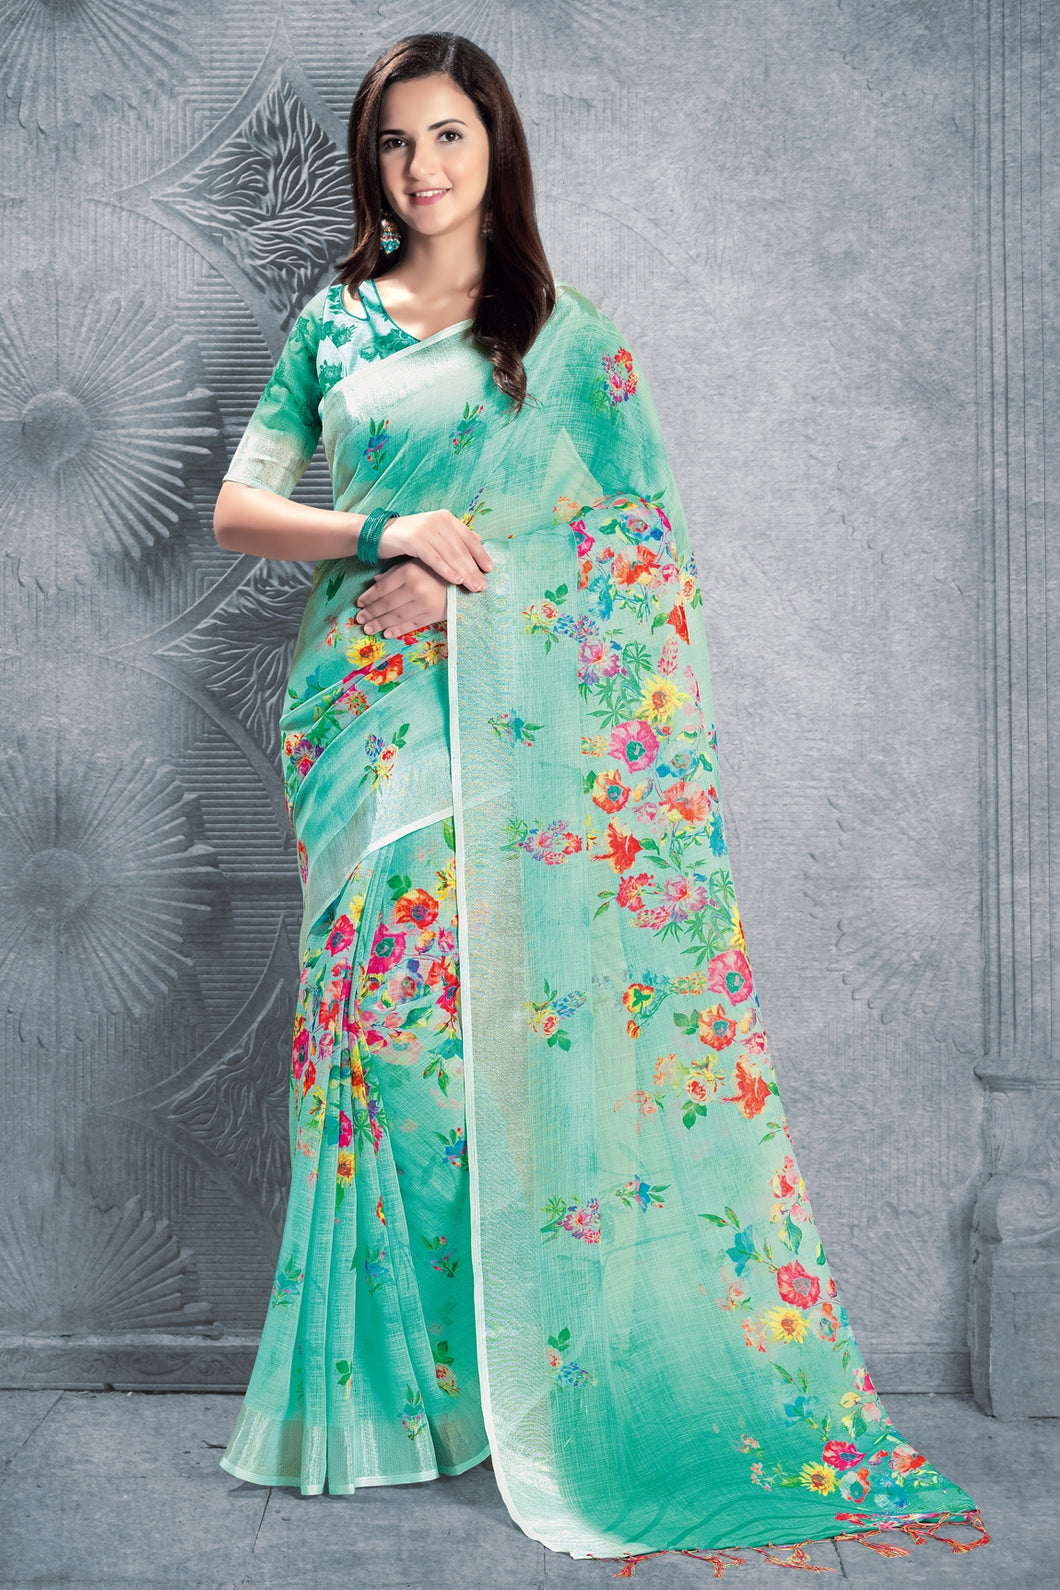 Bhelpuri Light Green Linen Floral Printed Tassel Saree with Linen Blouse Piece